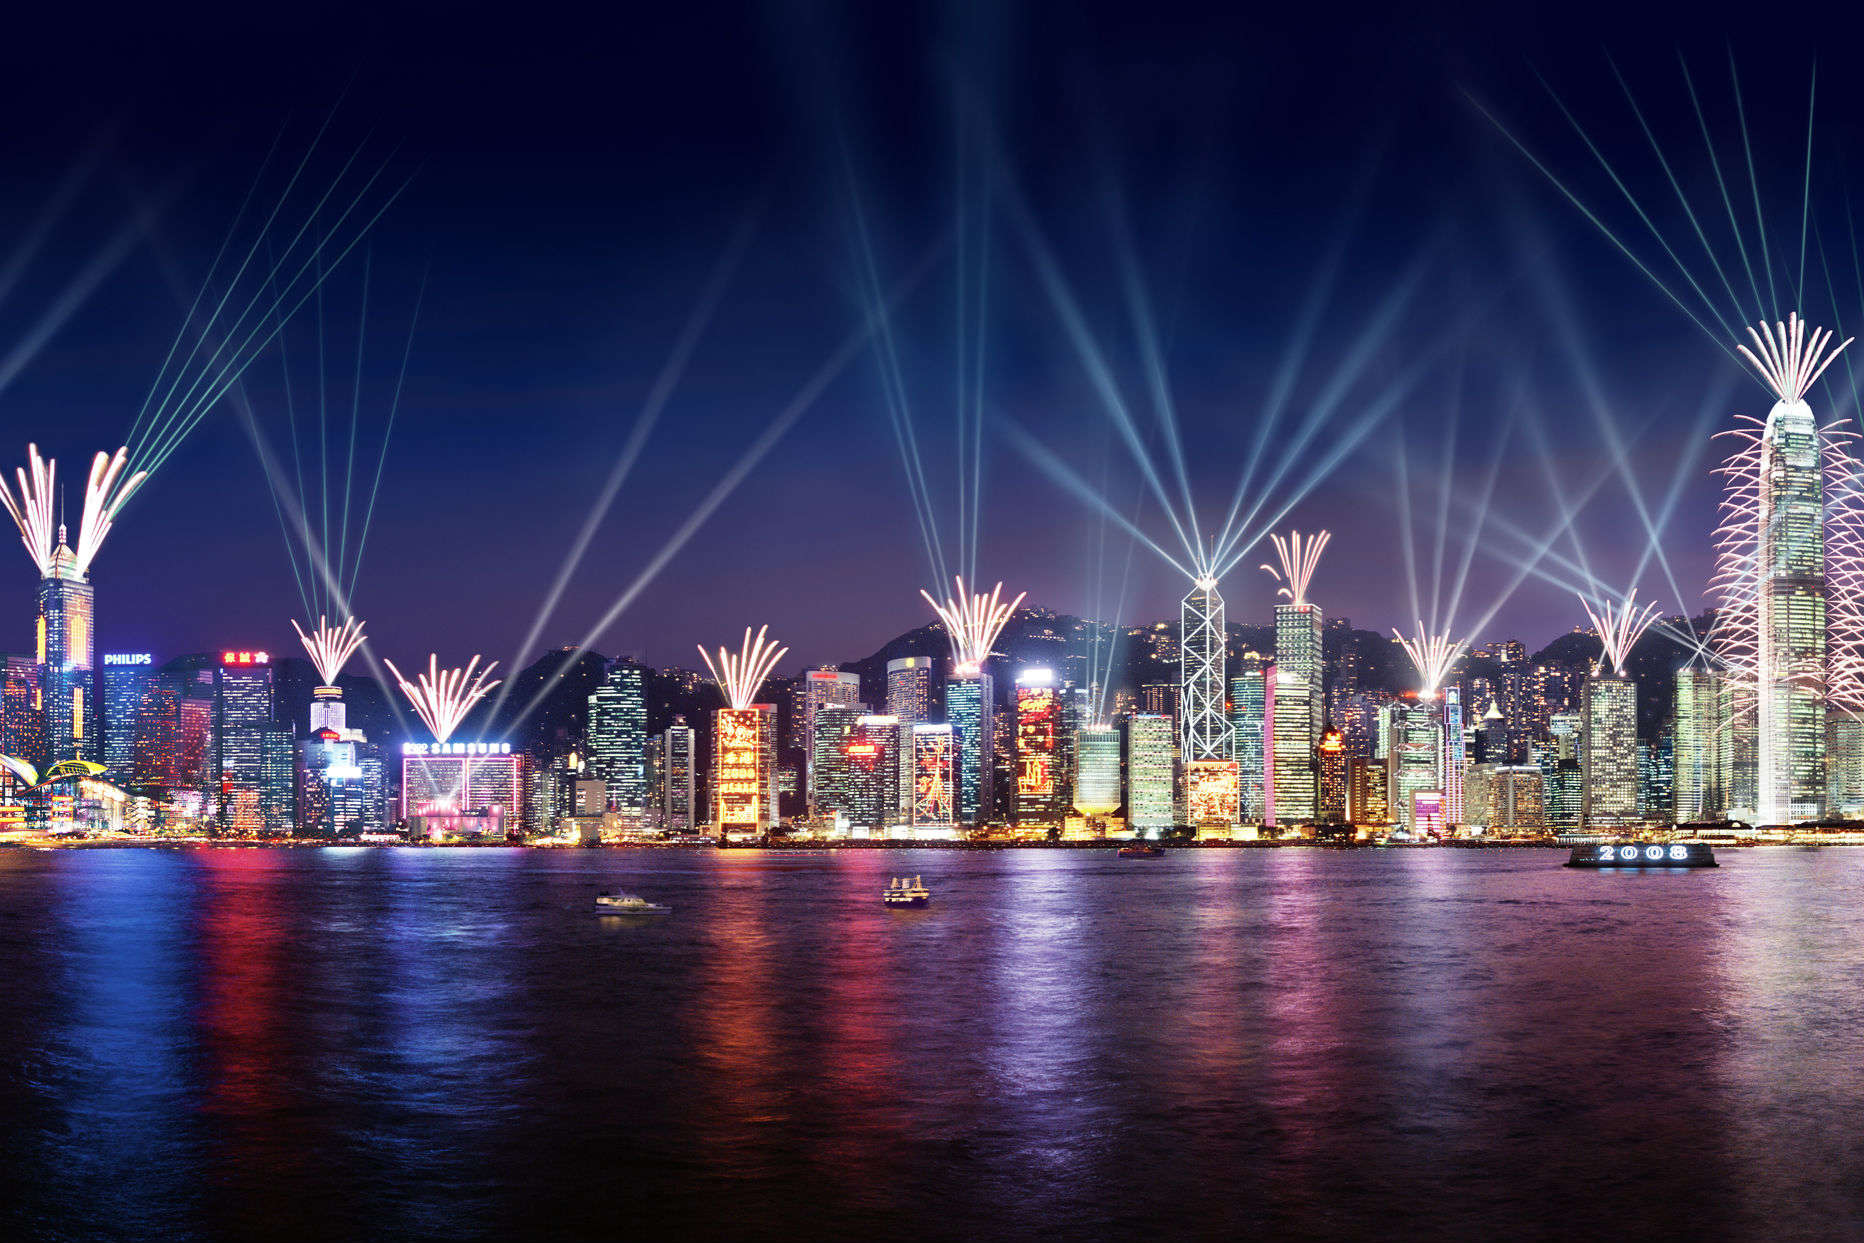 Experience the late night charms of Hong Kong